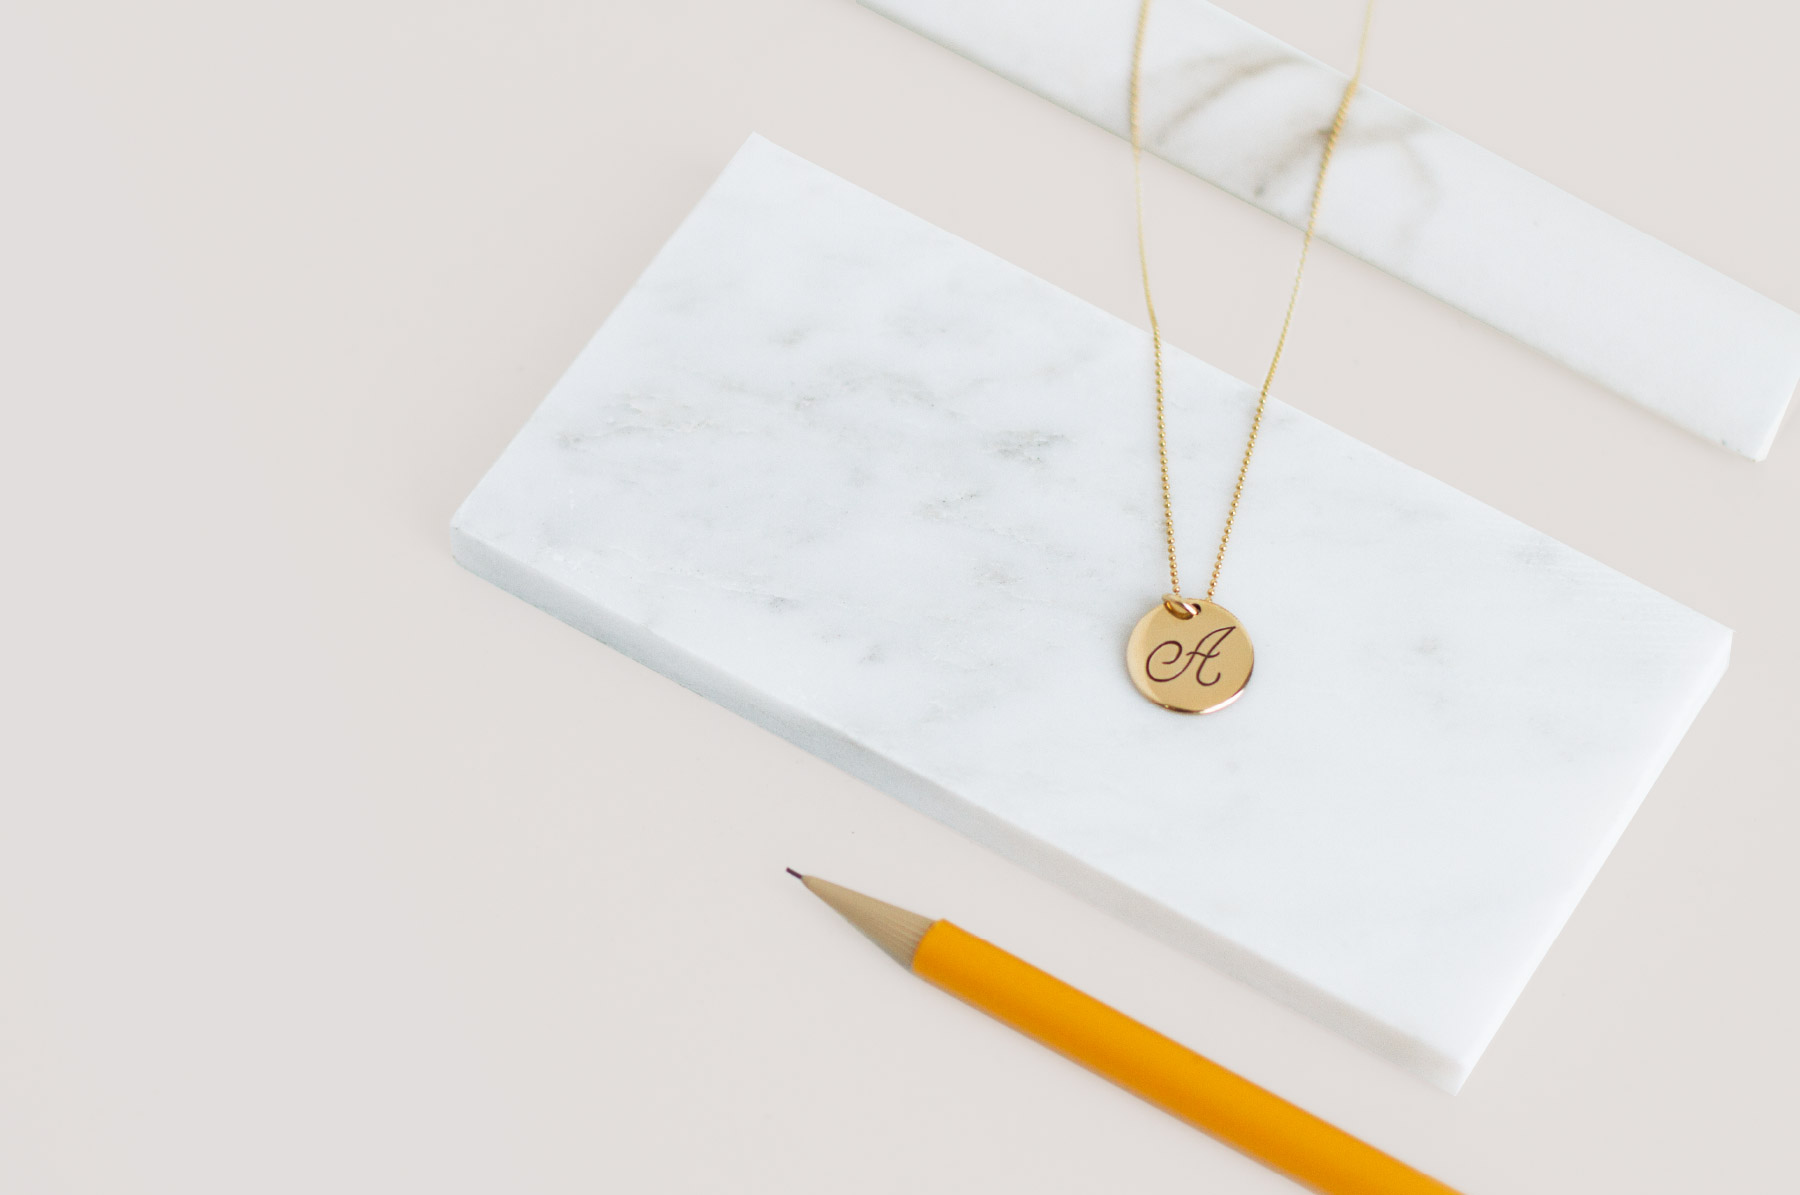 Fuze-Branding-Mommy-Jewelry-Customized-Jewerly-For-Mothers-Gold-Monogram-Necklace-Product-Photography